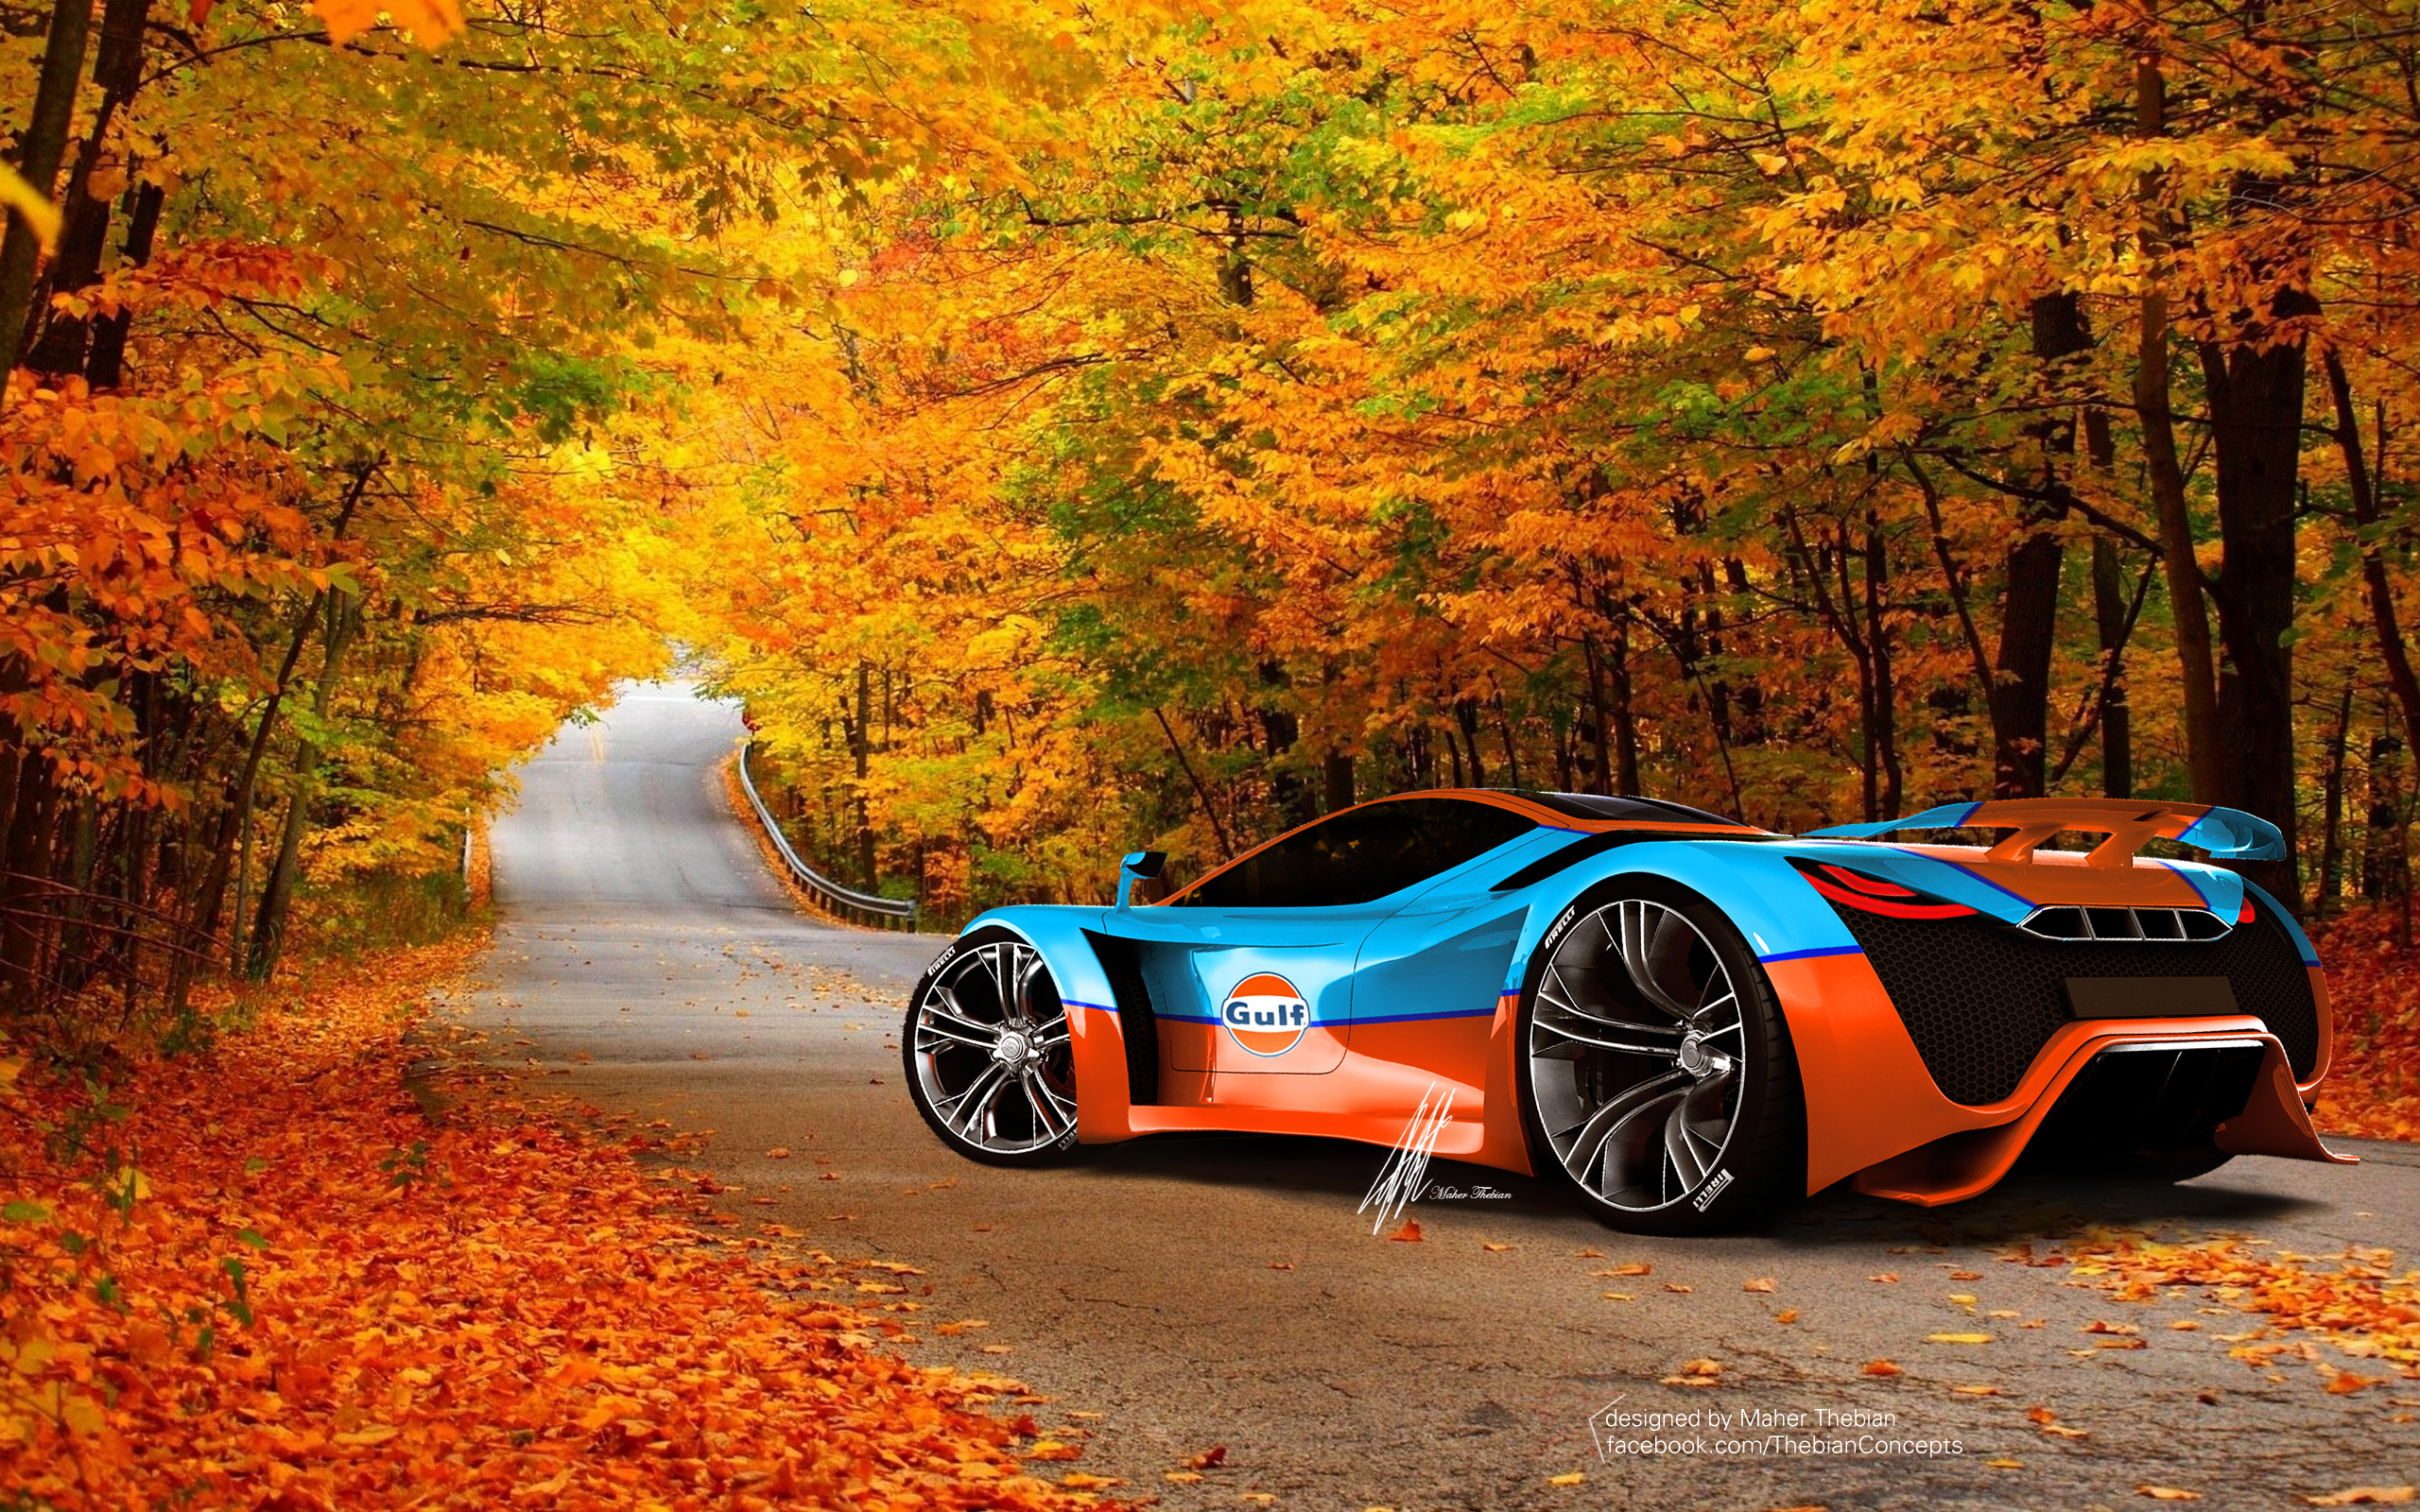 263 Pagani HD Wallpapers Background Images 2560x1600